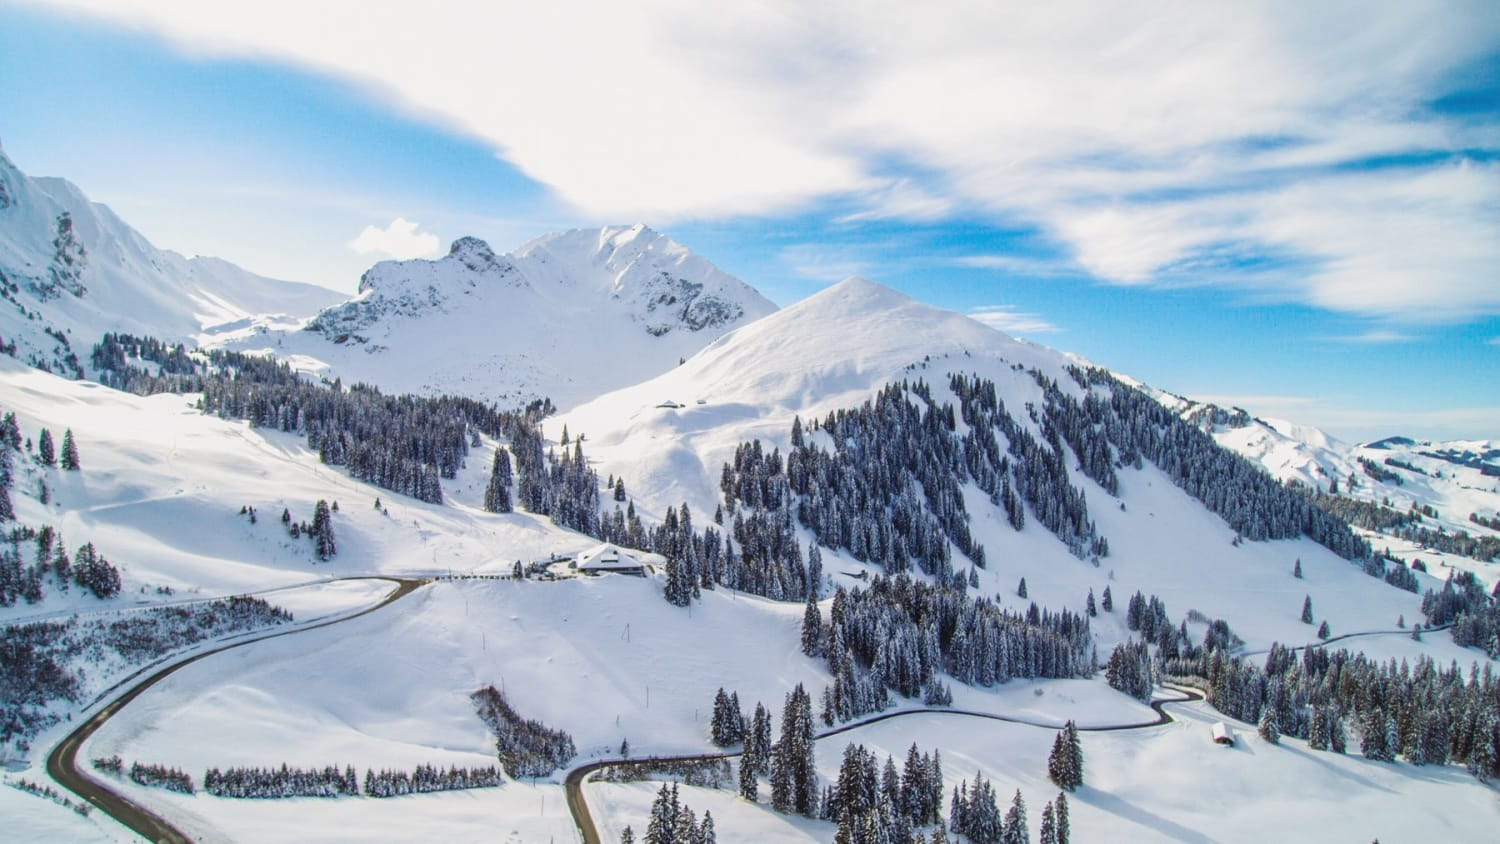 Best Winter Chalets & Hotel Resorts (in the mountains): Top 5 Ski Resorts in Switzerland